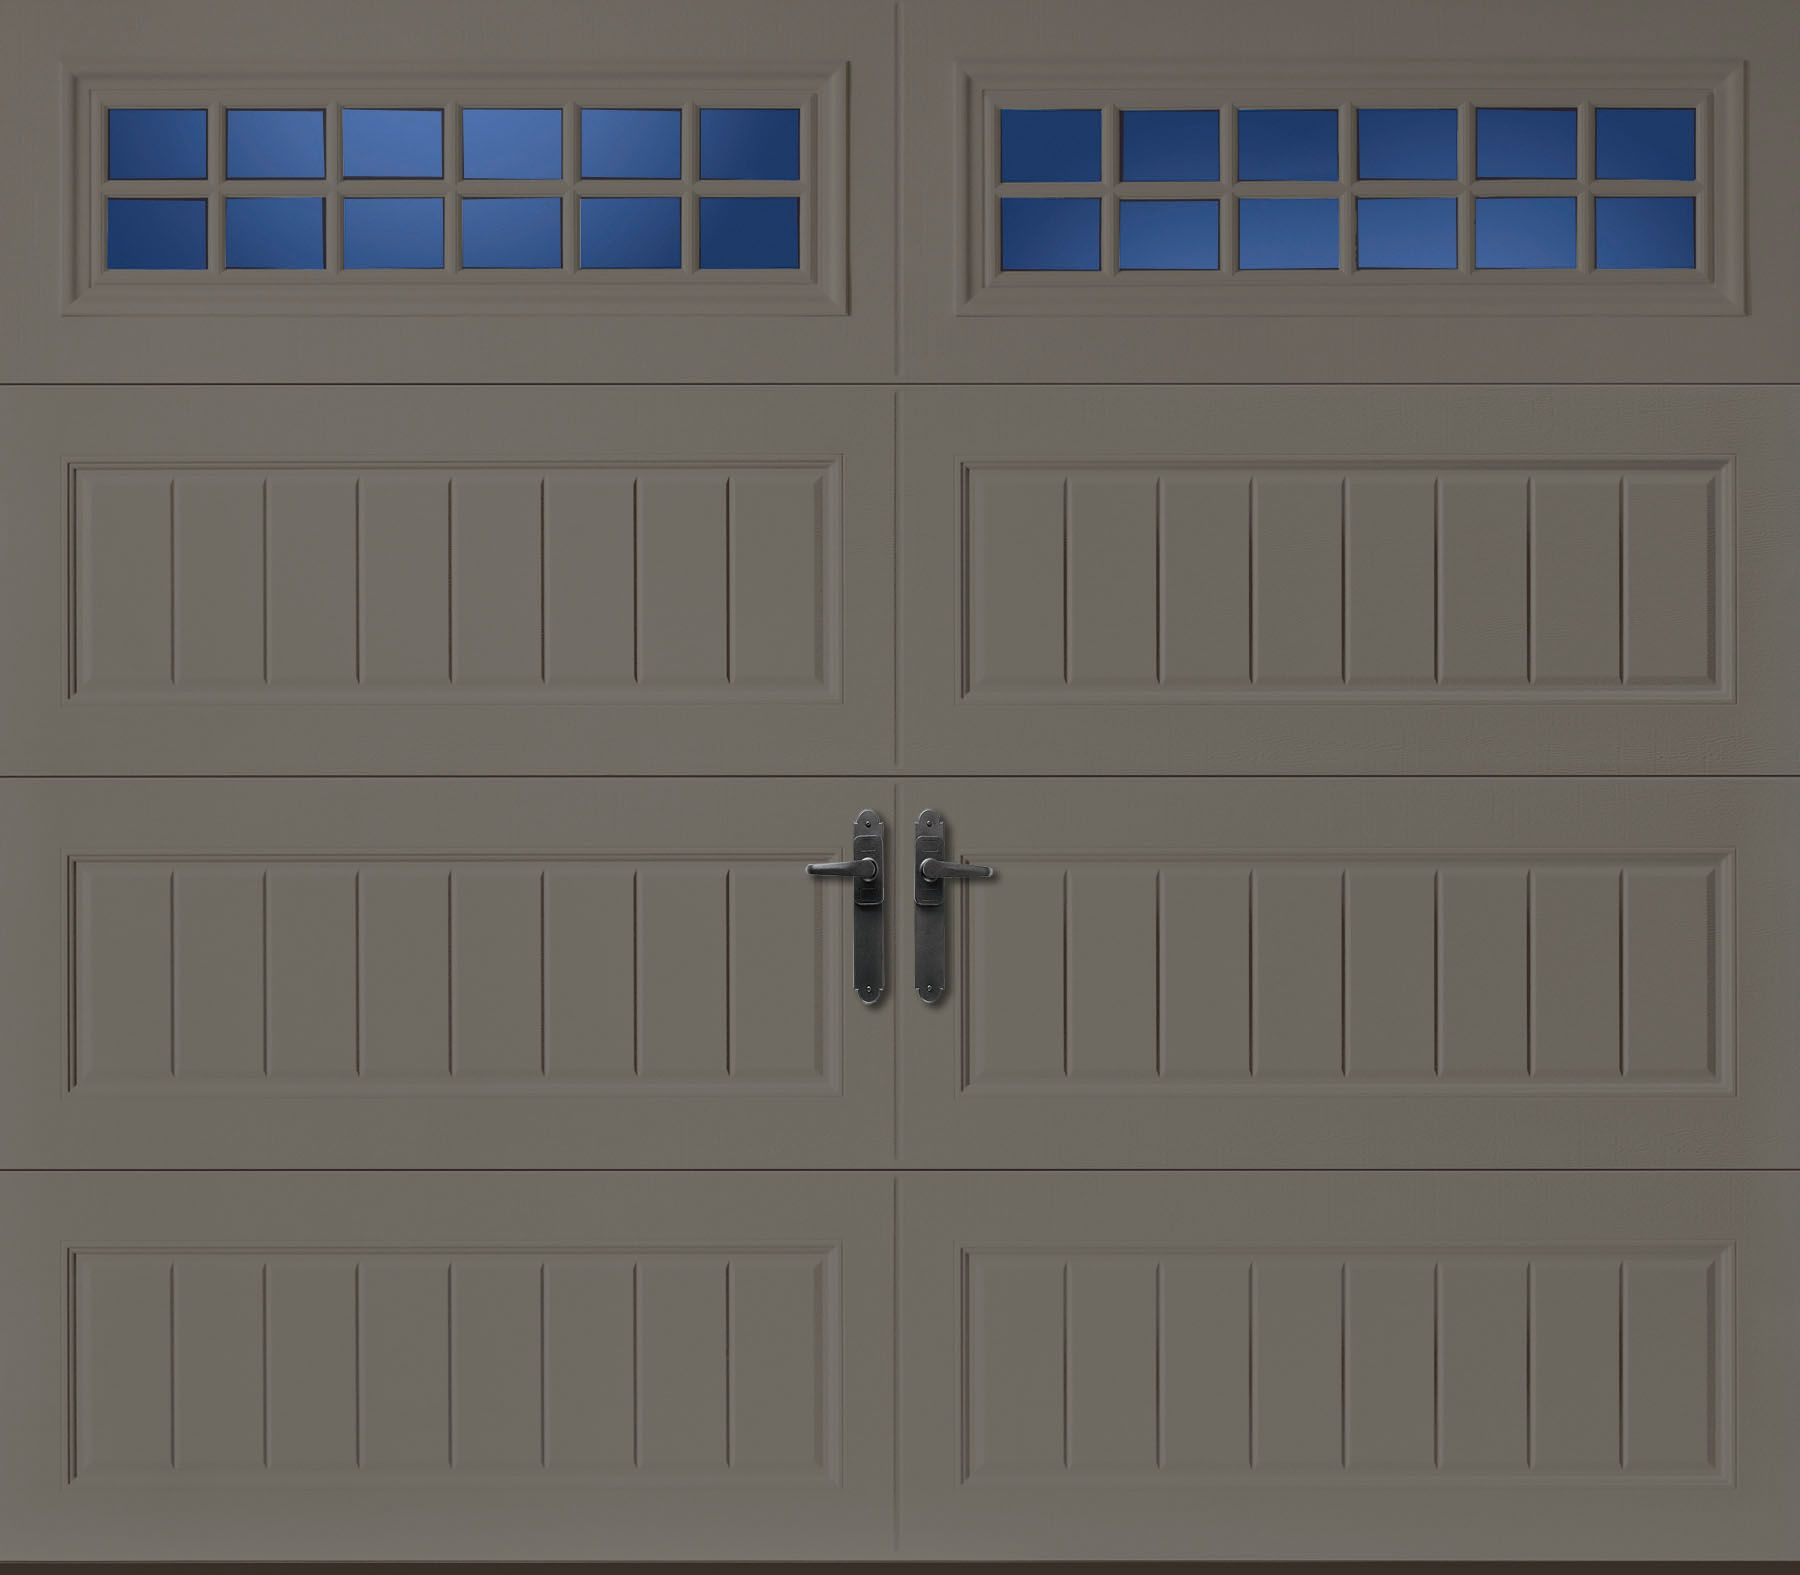 Amarr oak summit long panel bead board with stockton window amarr offers styles of garage doors choose from carriage house traditional and commercial garage doors in steel wood and wood composite materials rubansaba